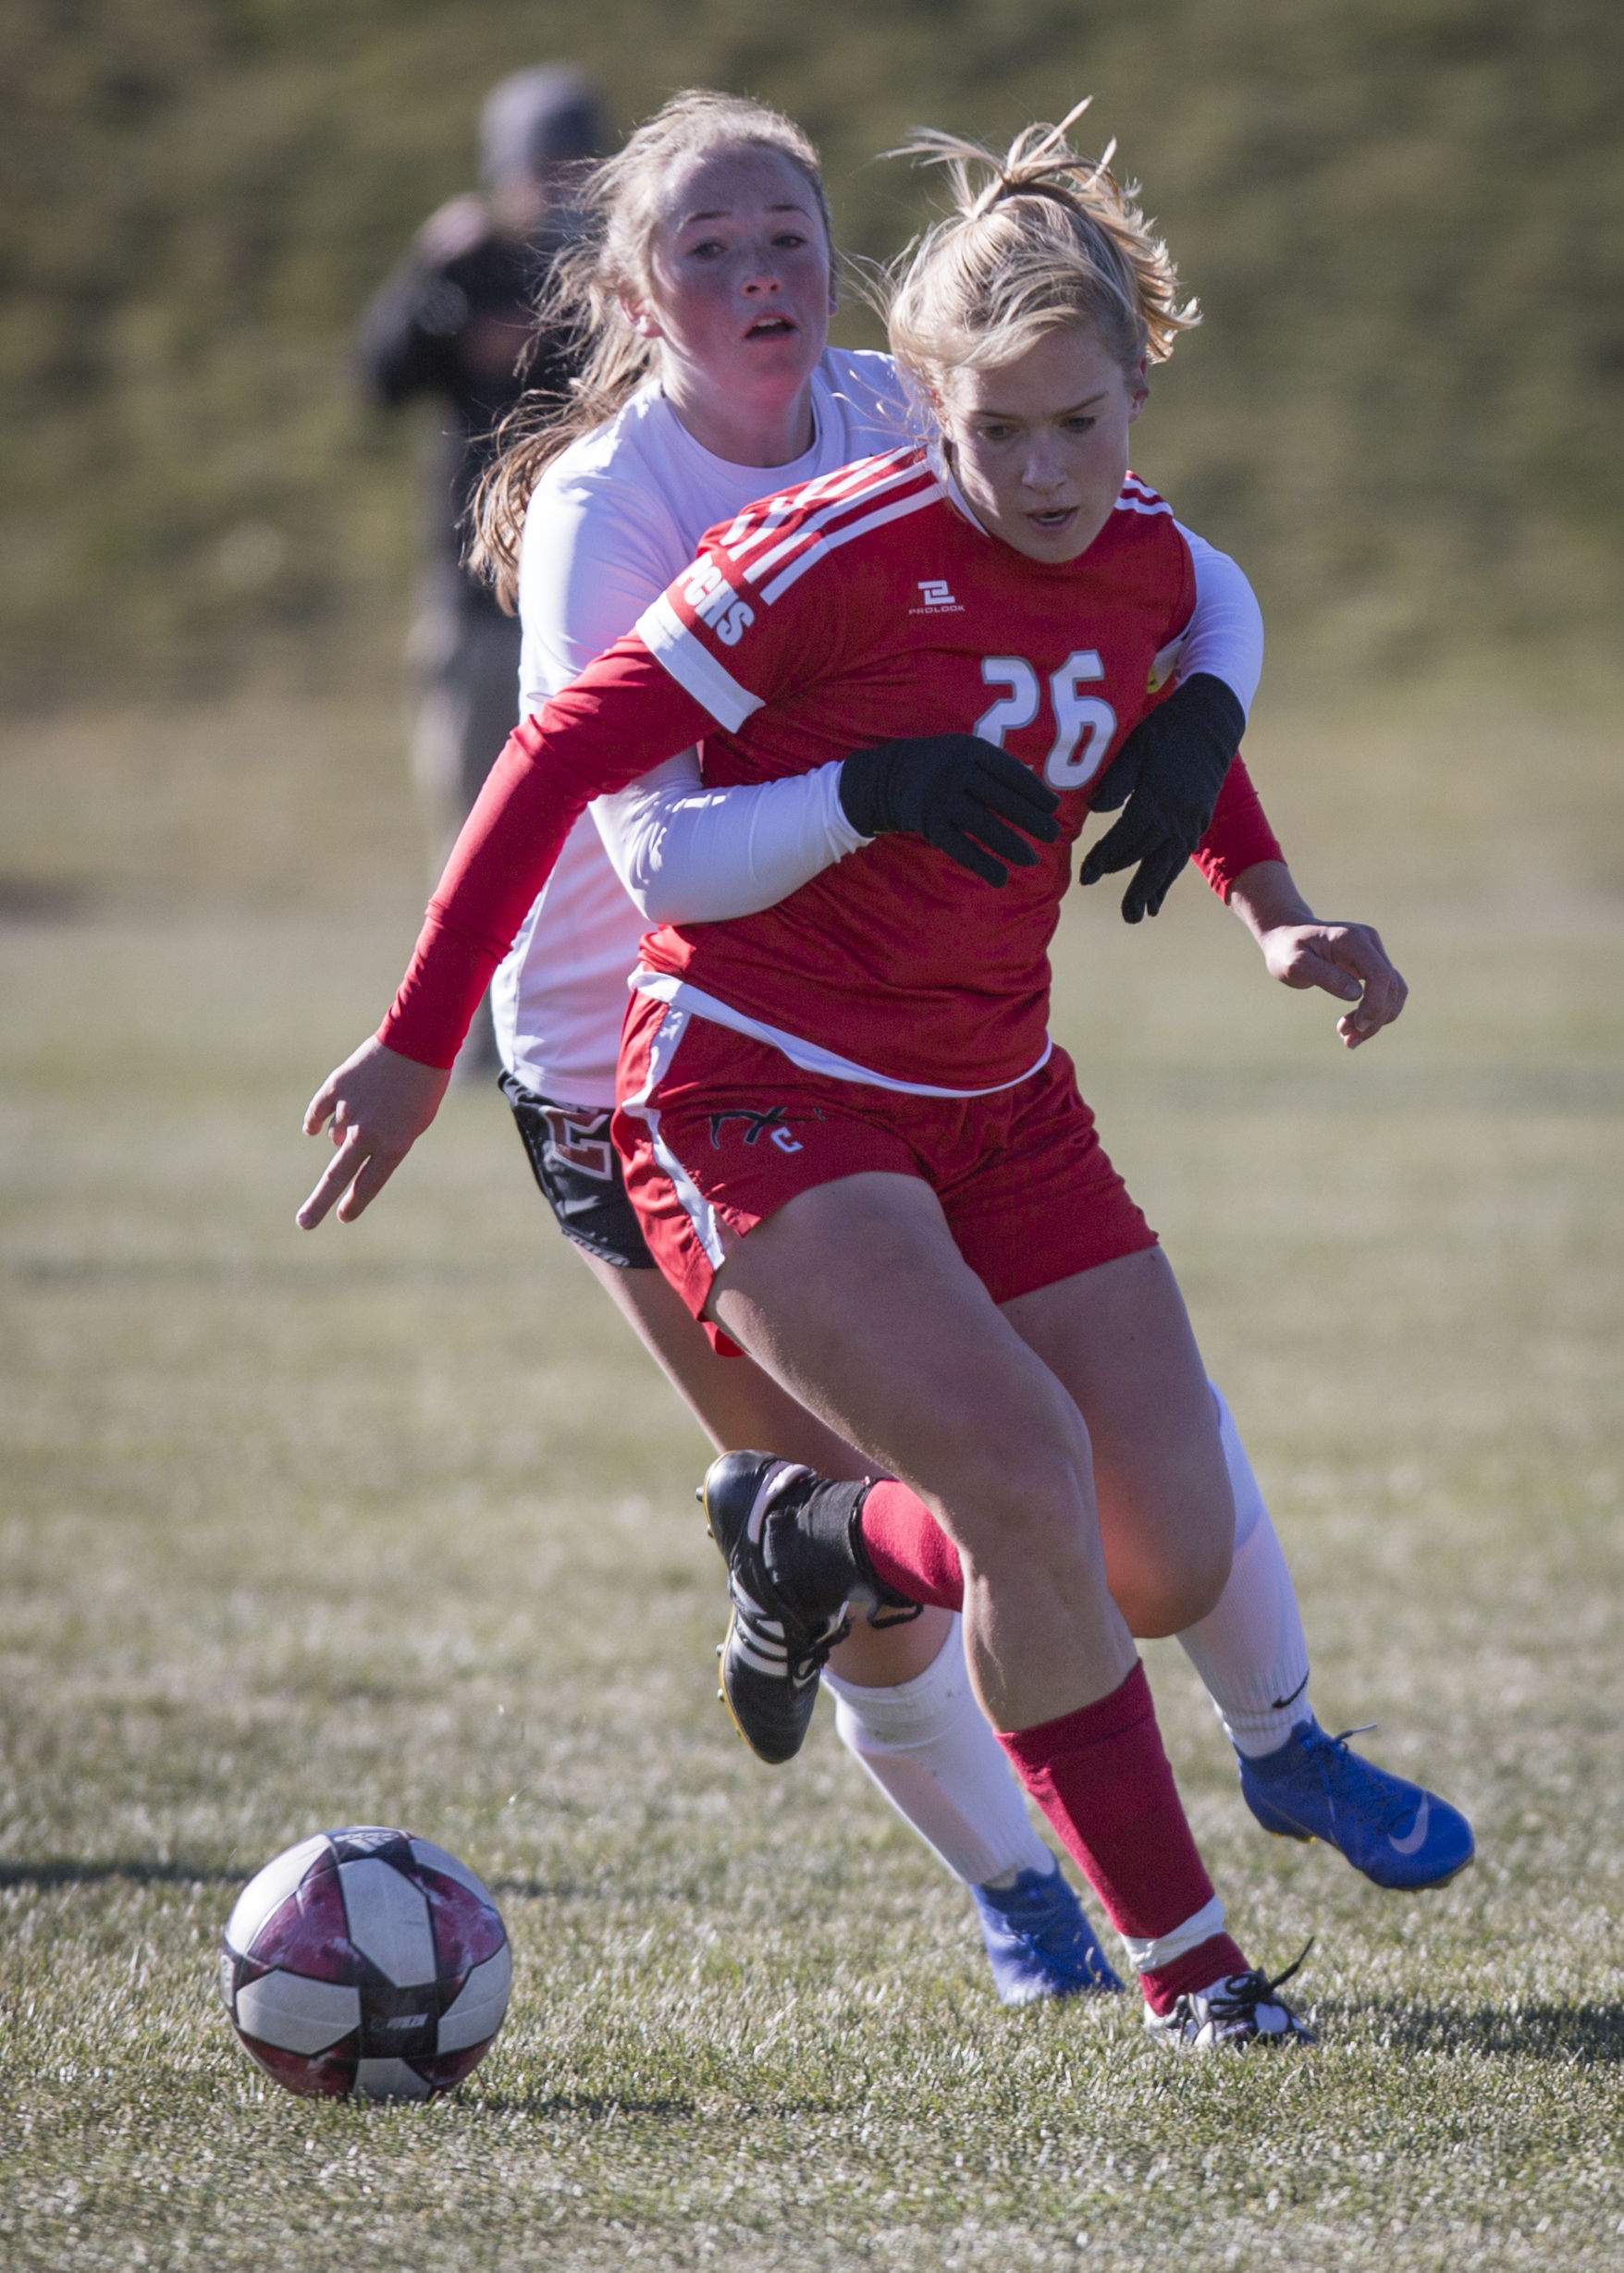 Park City girls soccer beats Bountiful to advance in 5A playoffs